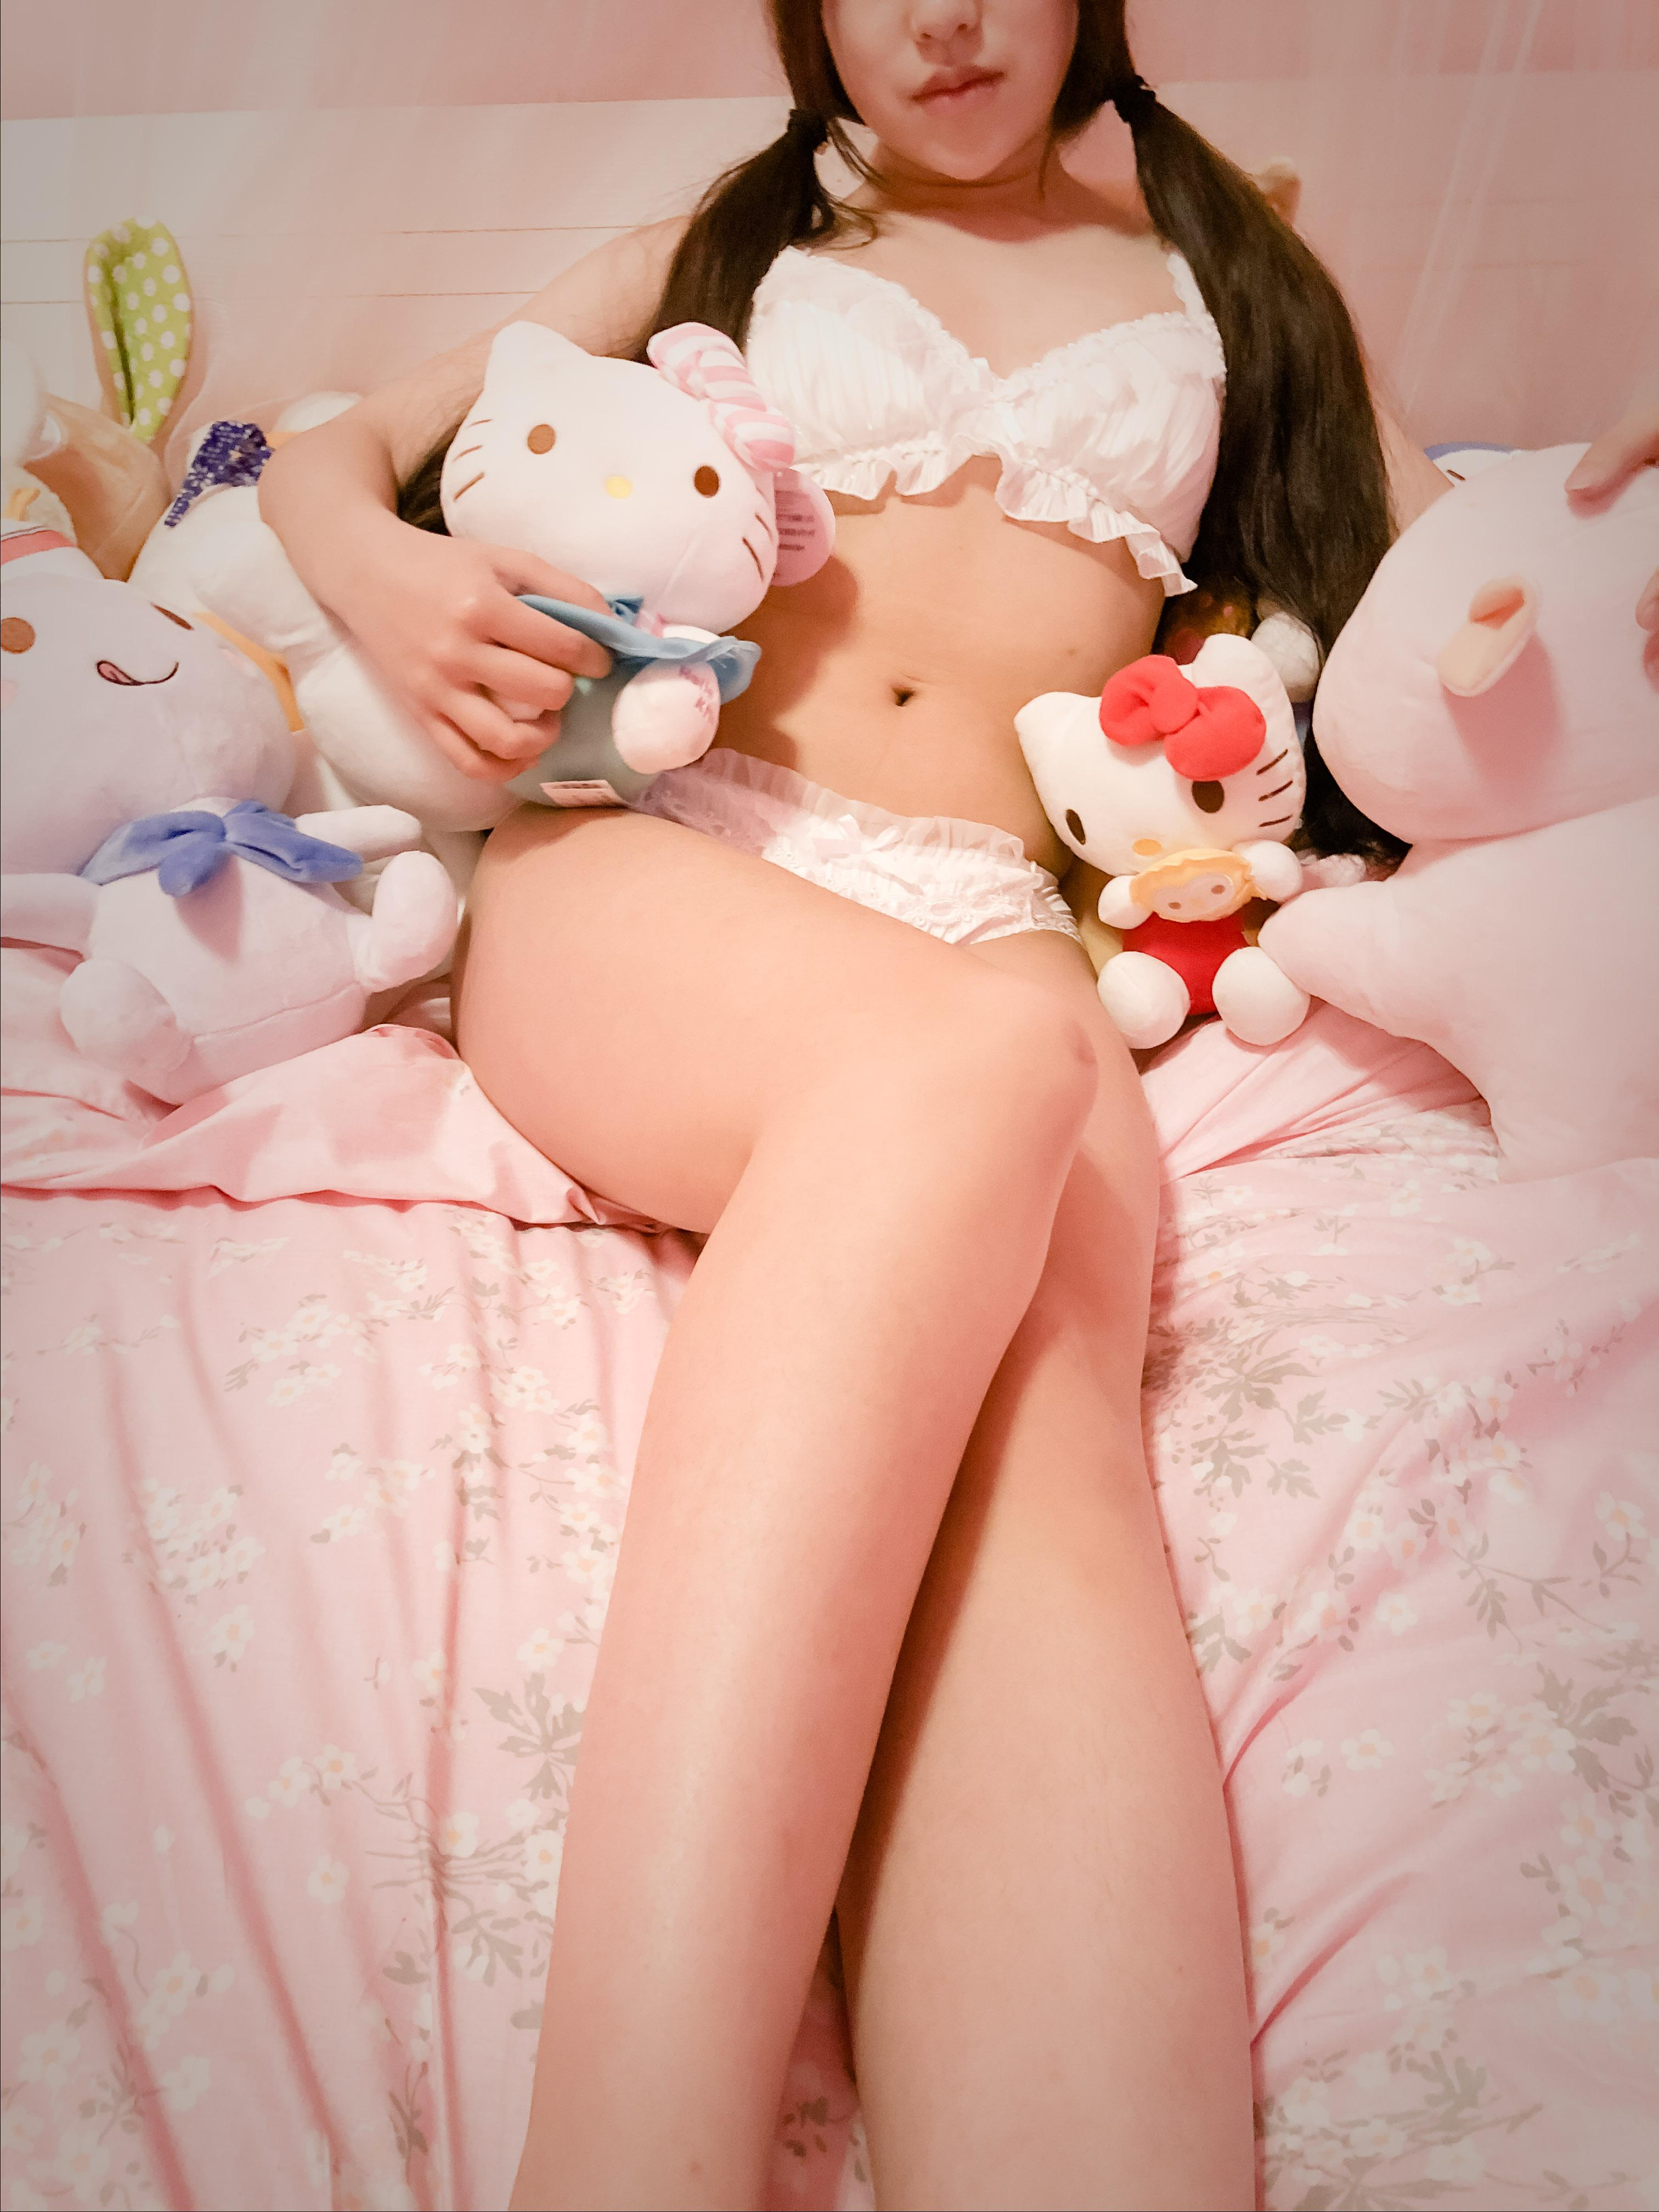 Picture with tags: Interesting, Lingerie, Girl